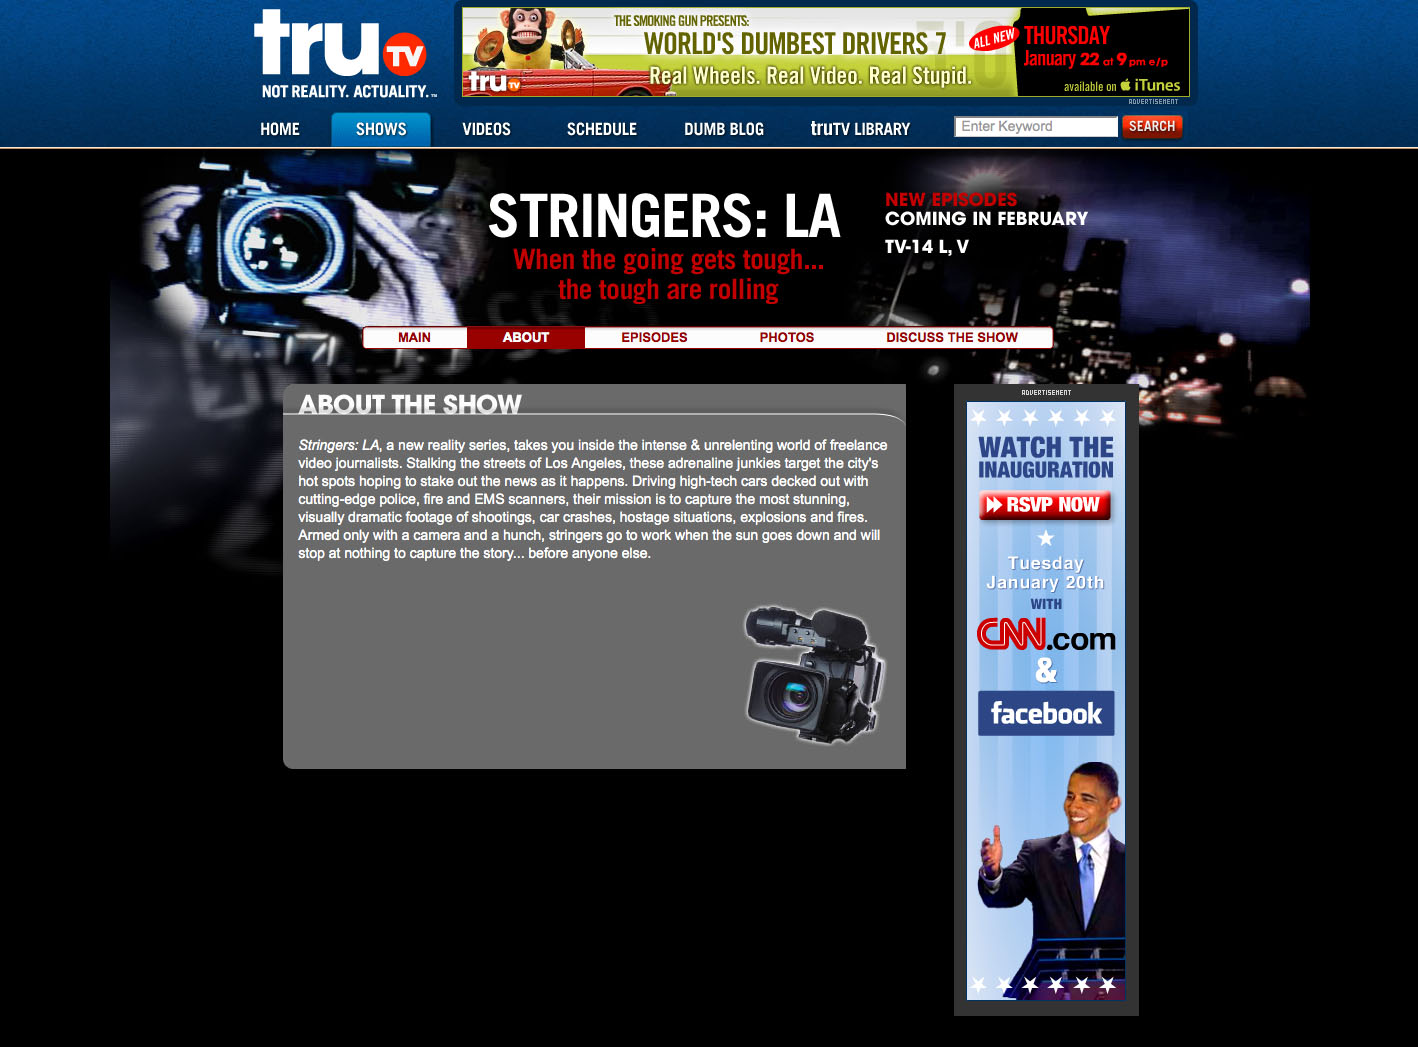 Stringers-LA About the Show